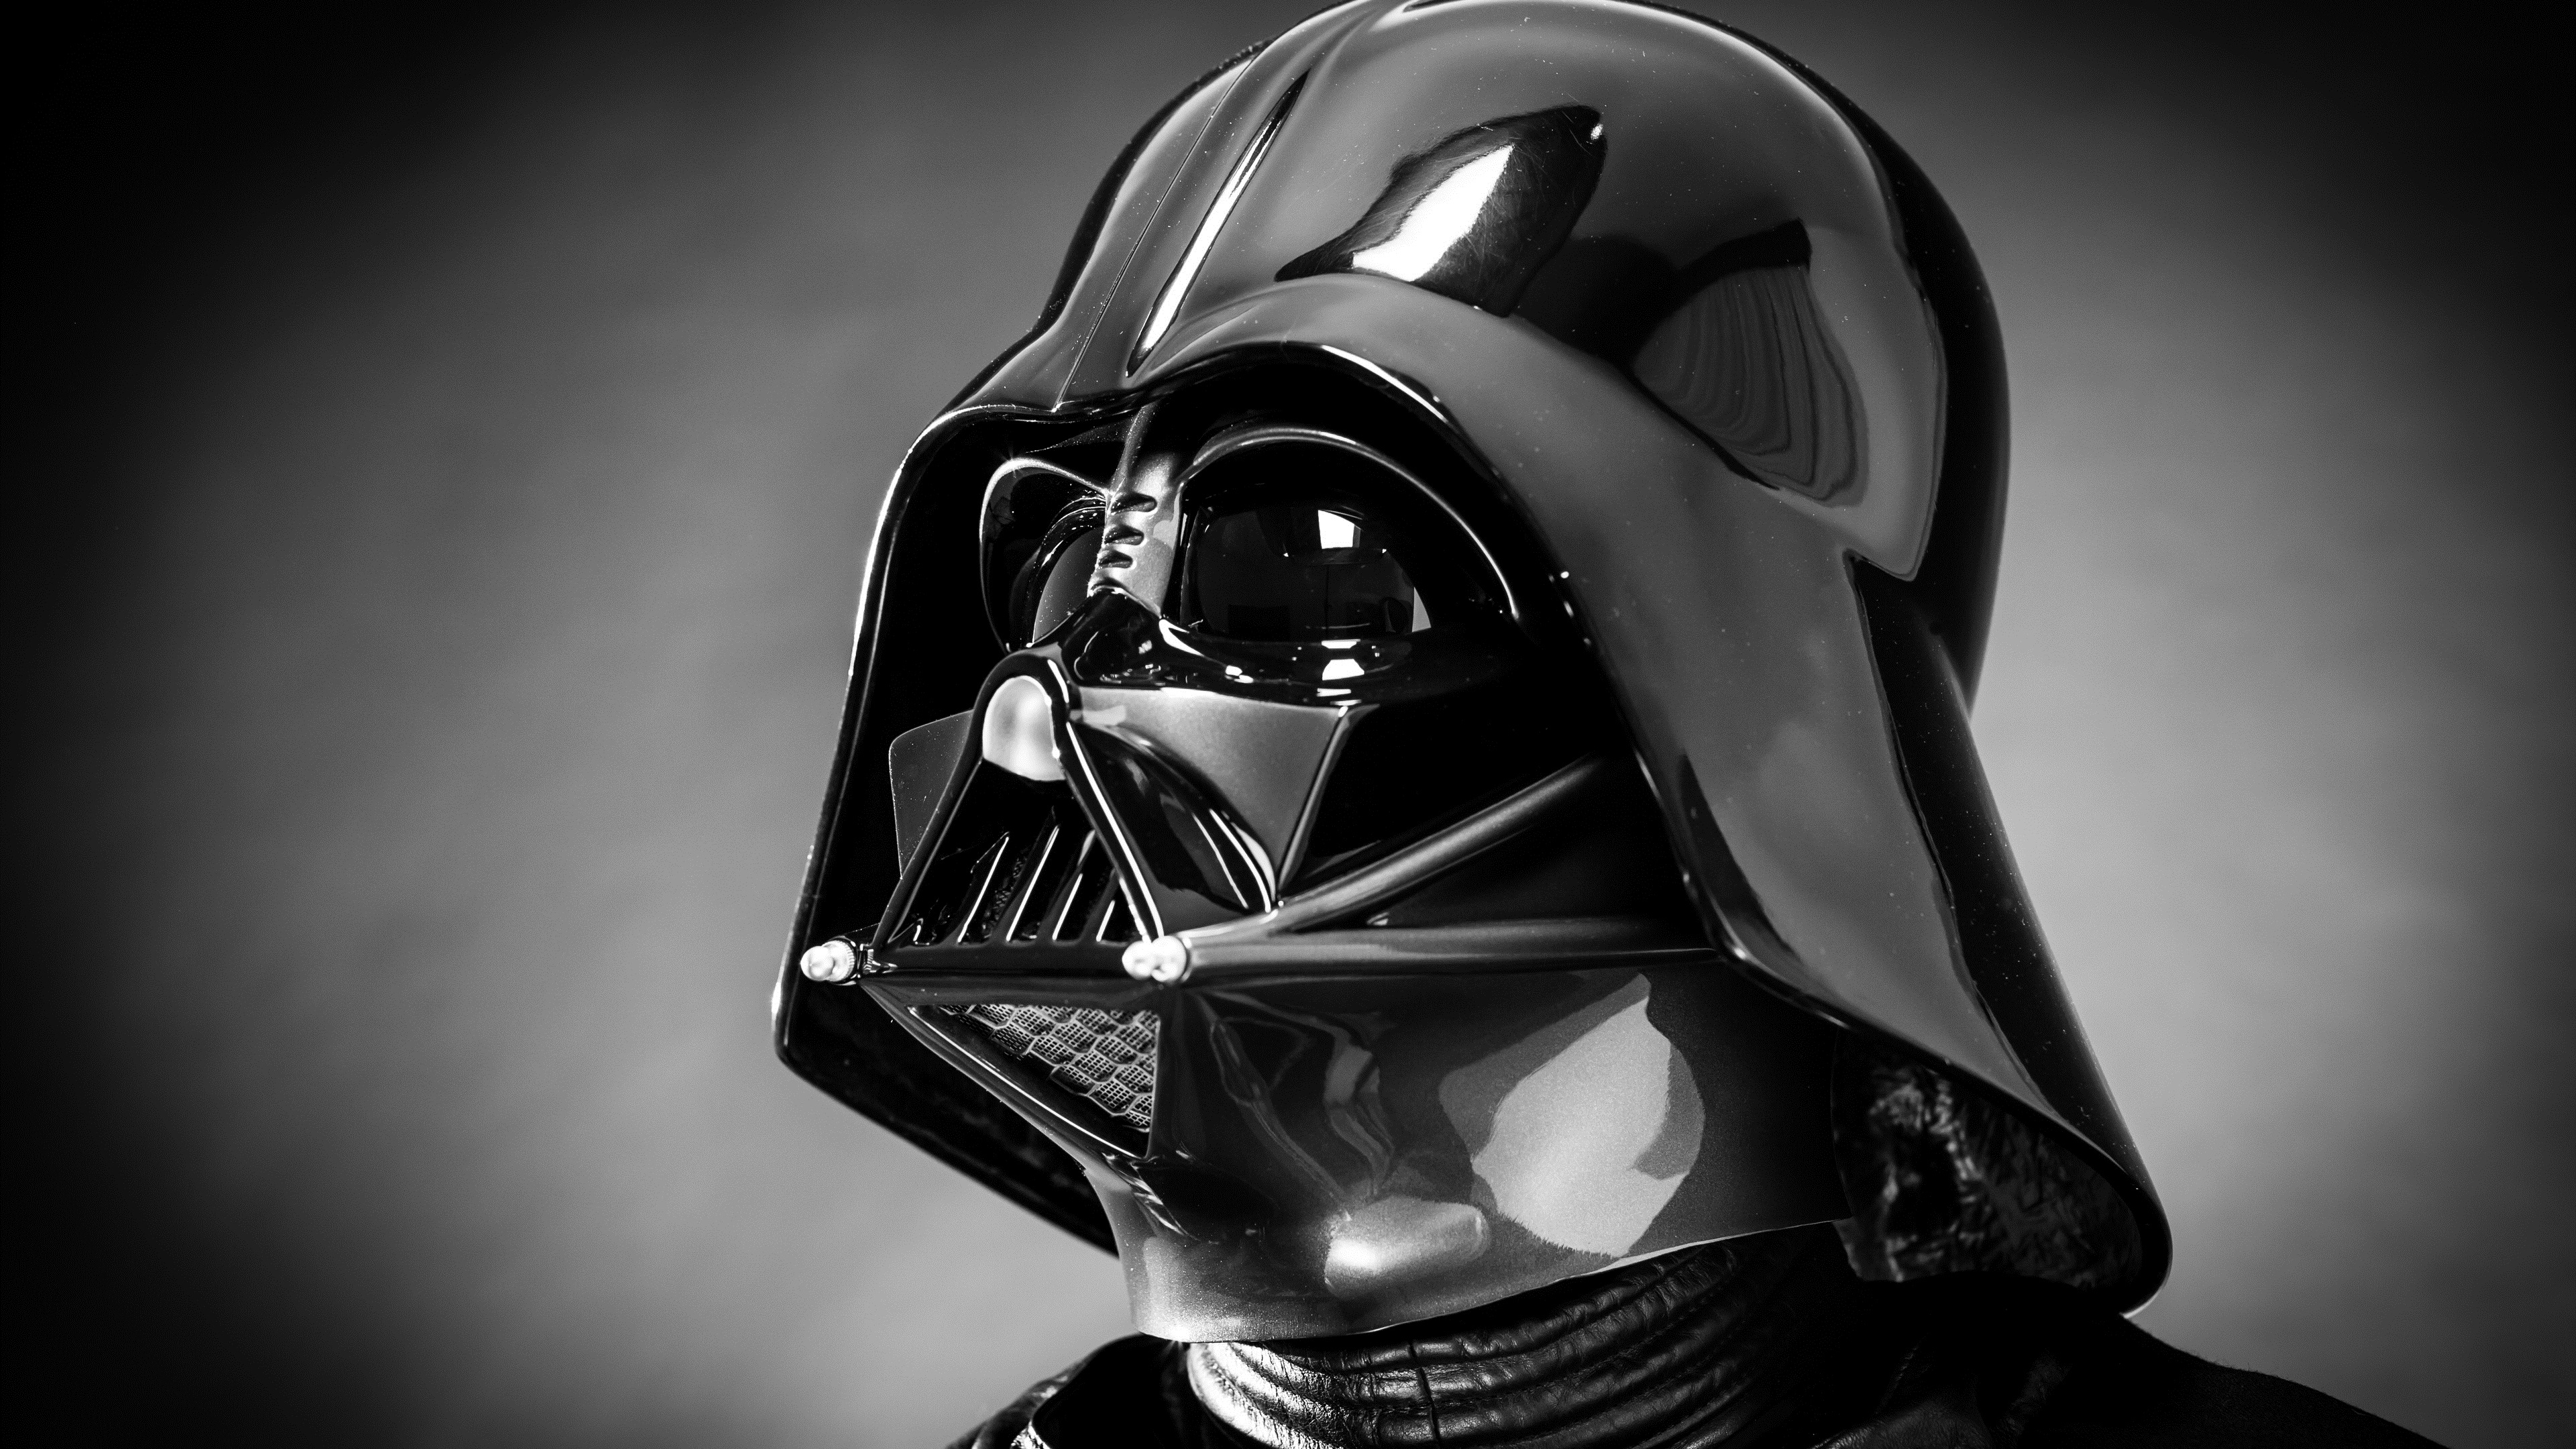 Wallpaper Star Wars Darth Vader Helmet 3840x2160 Uhd 4k Picture